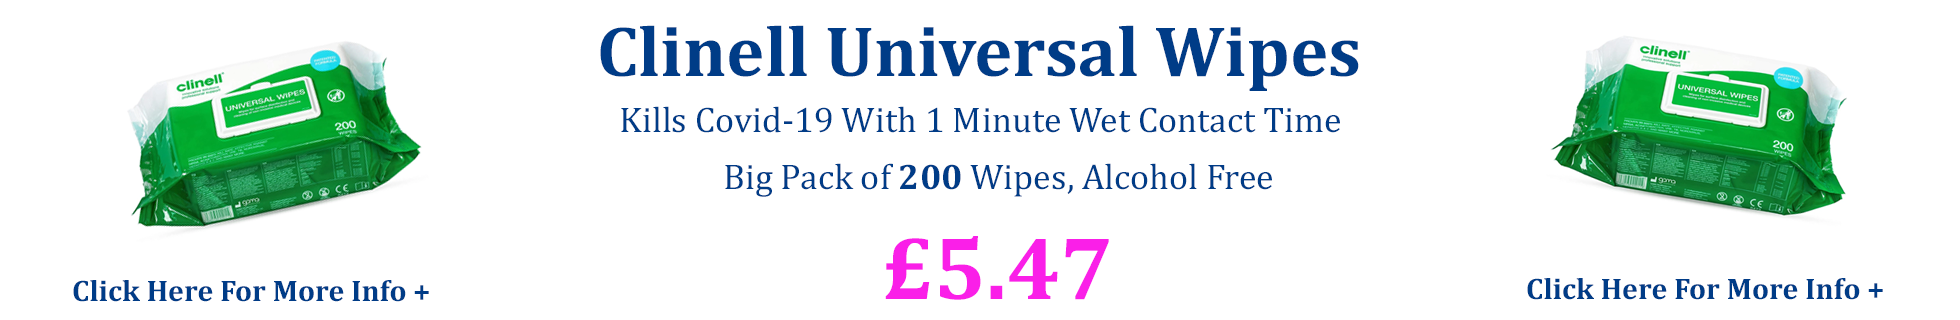 PJ840 MEDICAL WIPES/FACIAL TISSUES 2 PLY X 72 BOXES